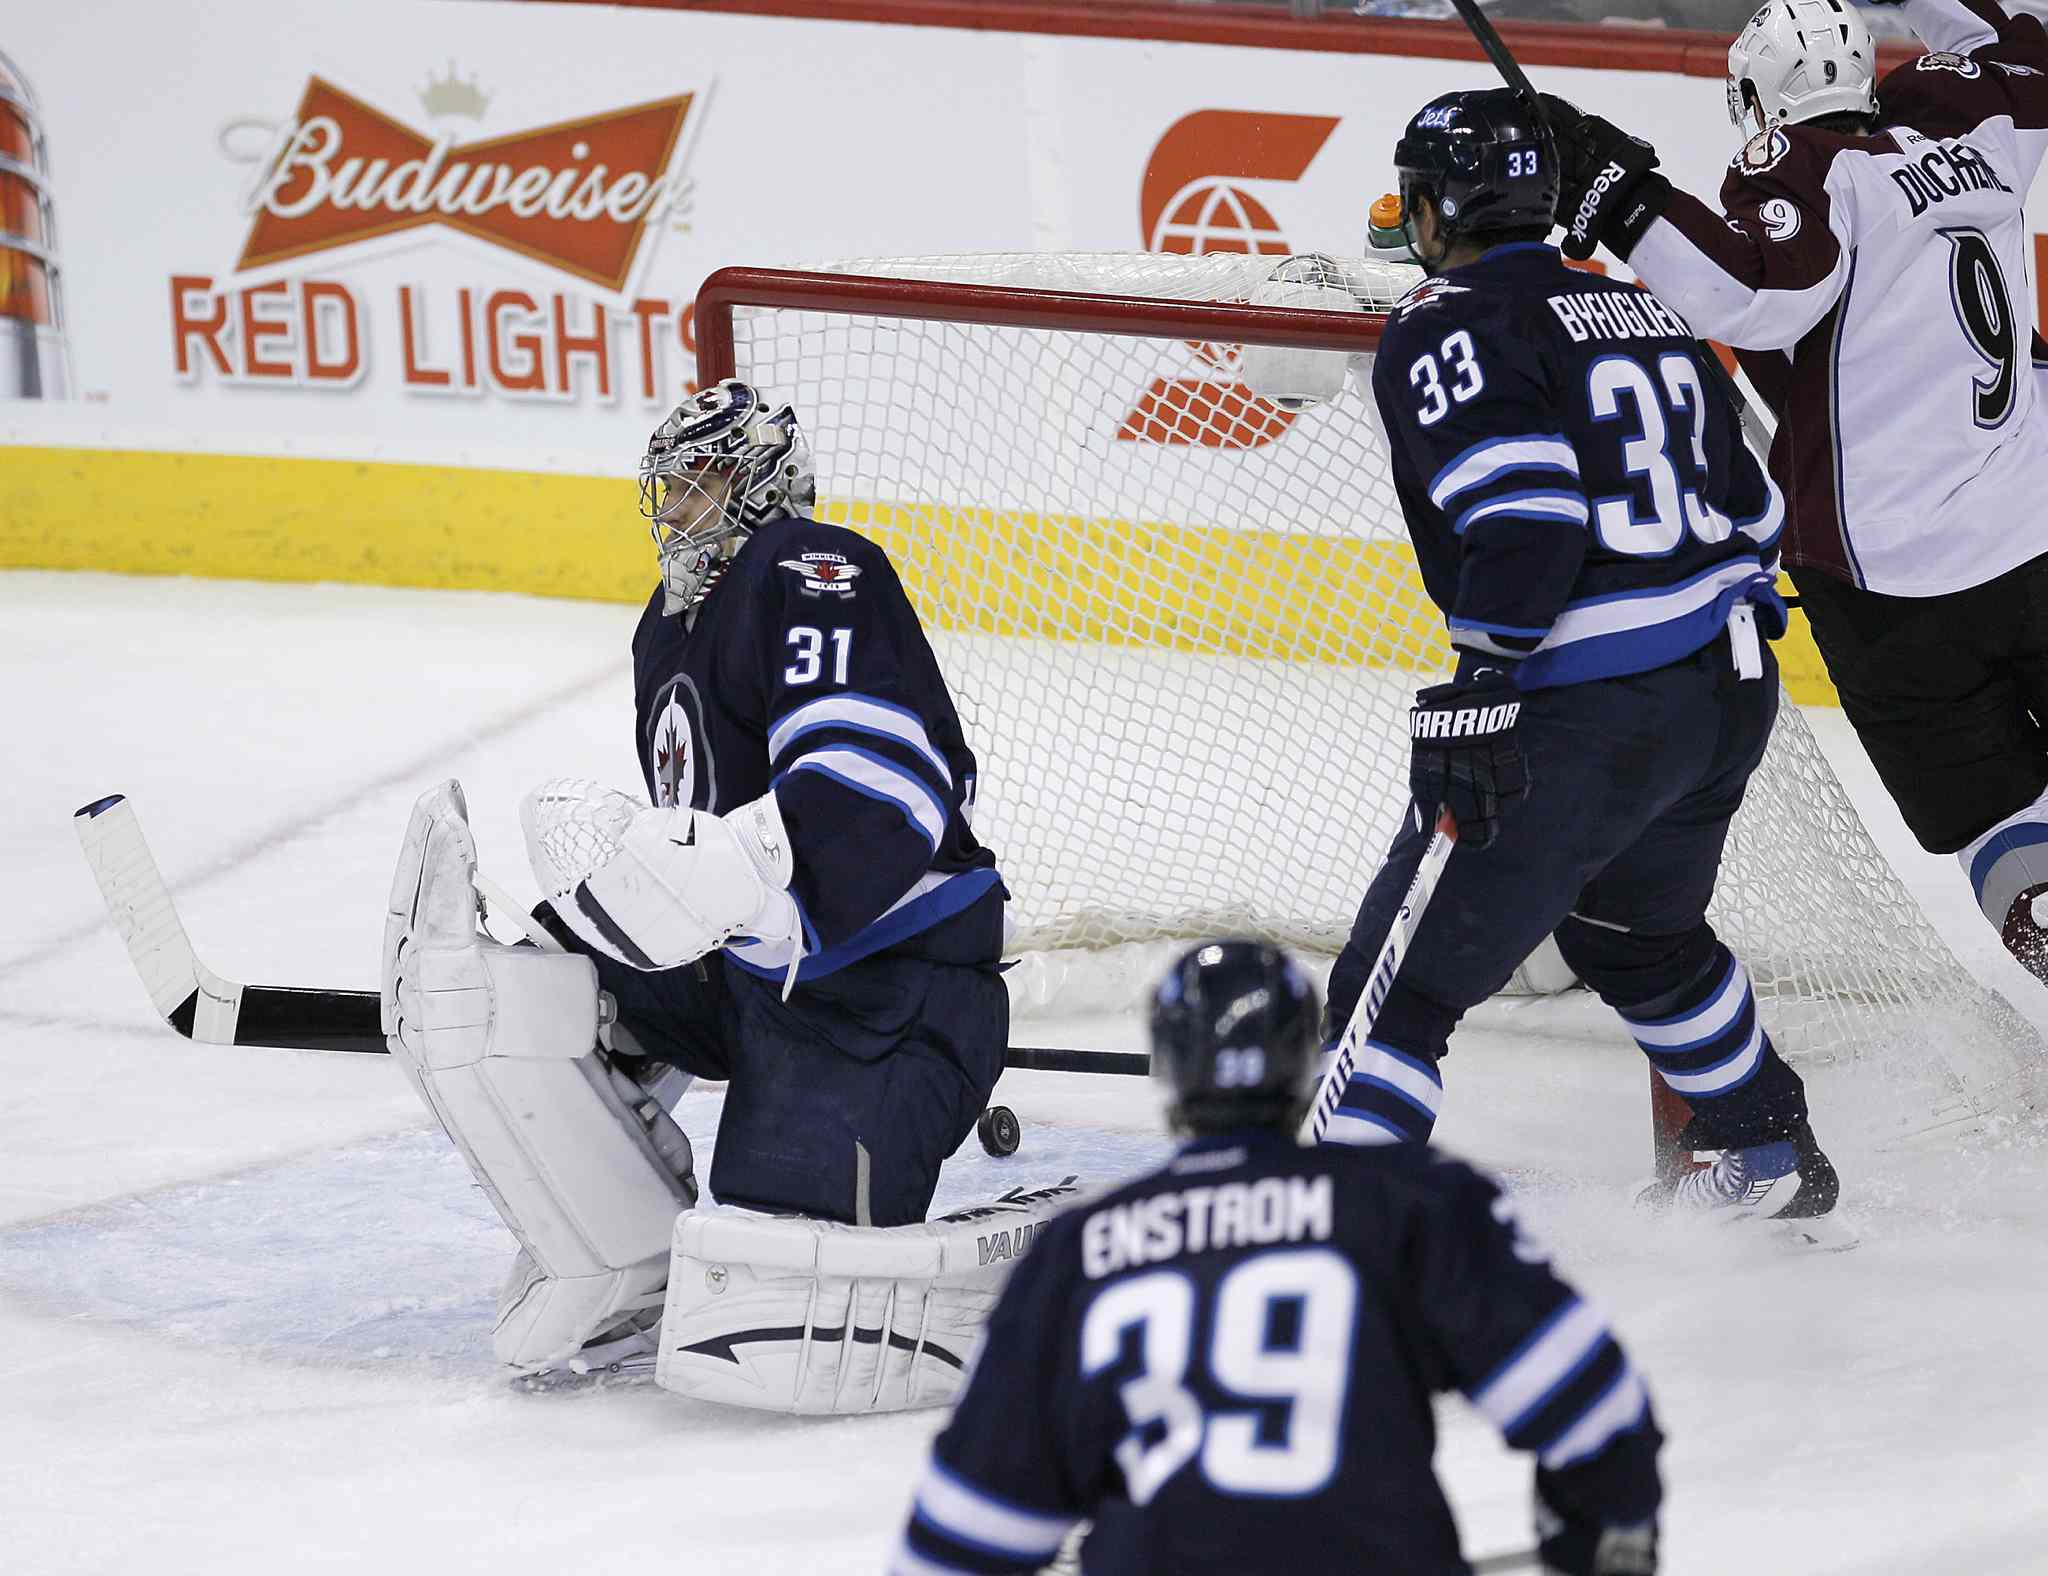 Colorado Avalanche's Matt Duchene (right) scores on Winnipeg Jets goaltender Ondrej Pavelec (left) as Jets defencemen Dustin Byfuglien (centre right) and Tobias Enstrom (right) looks on at the end of the first period.